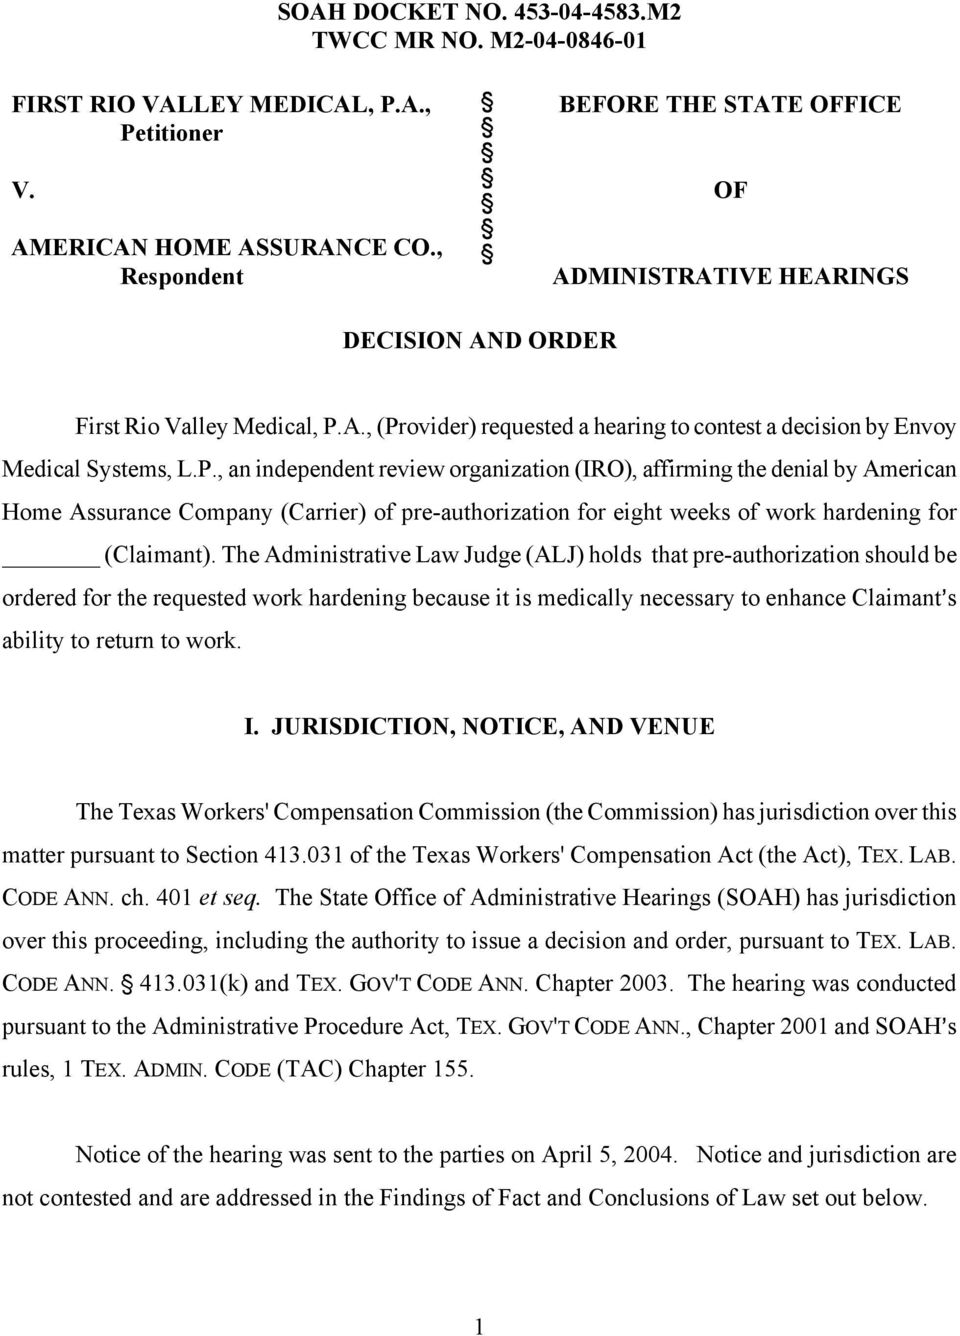 A., (Provider) requested a hearing to contest a decision by Envoy Medical Systems, L.P., an independent review organization (IRO), affirming the denial by American Home Assurance Company (Carrier) of pre-authorization for eight weeks of work hardening for (Claimant).